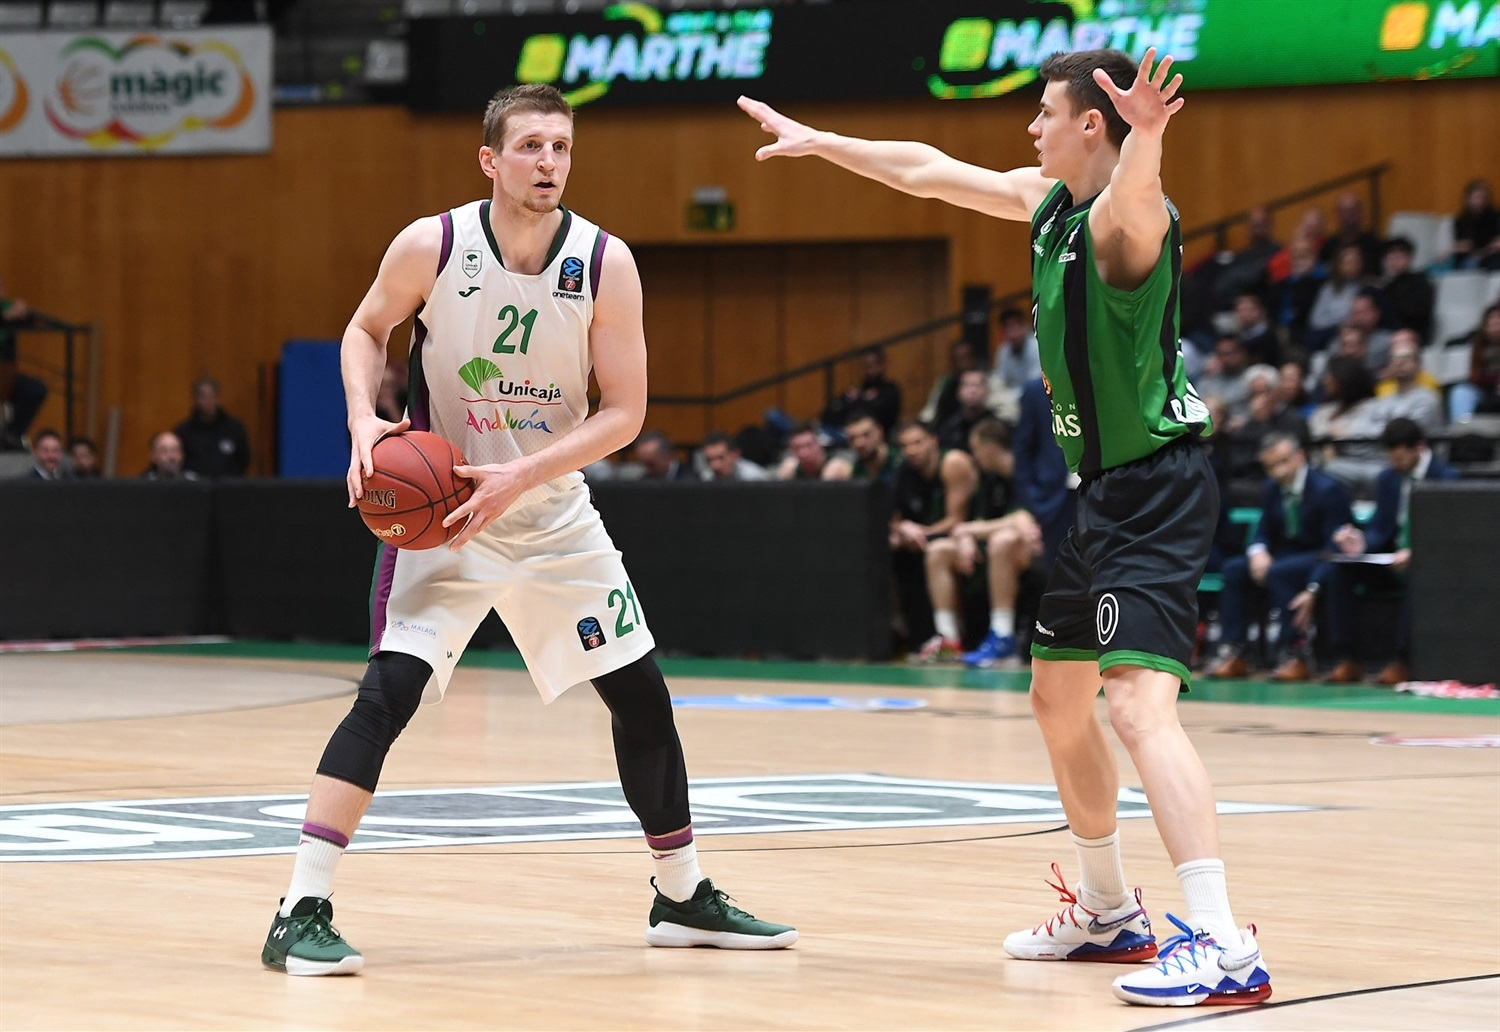 Adam Waczynski - Unicaja Malaga (photo David Grau - Joventut) - EC19